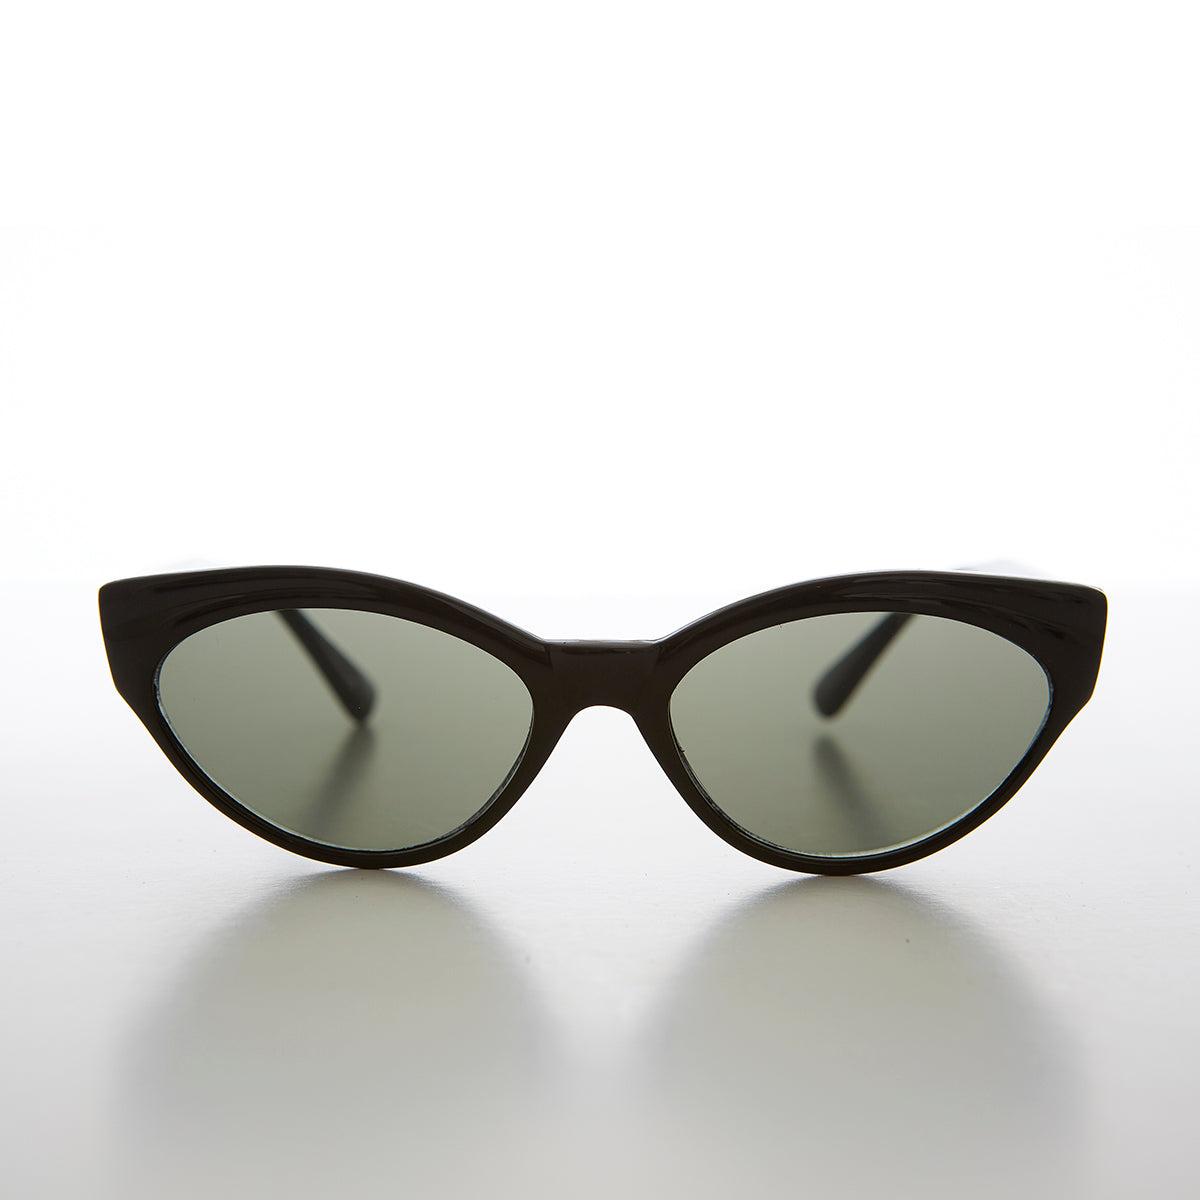 Small Oval Cat Eye Vintage Sunglass